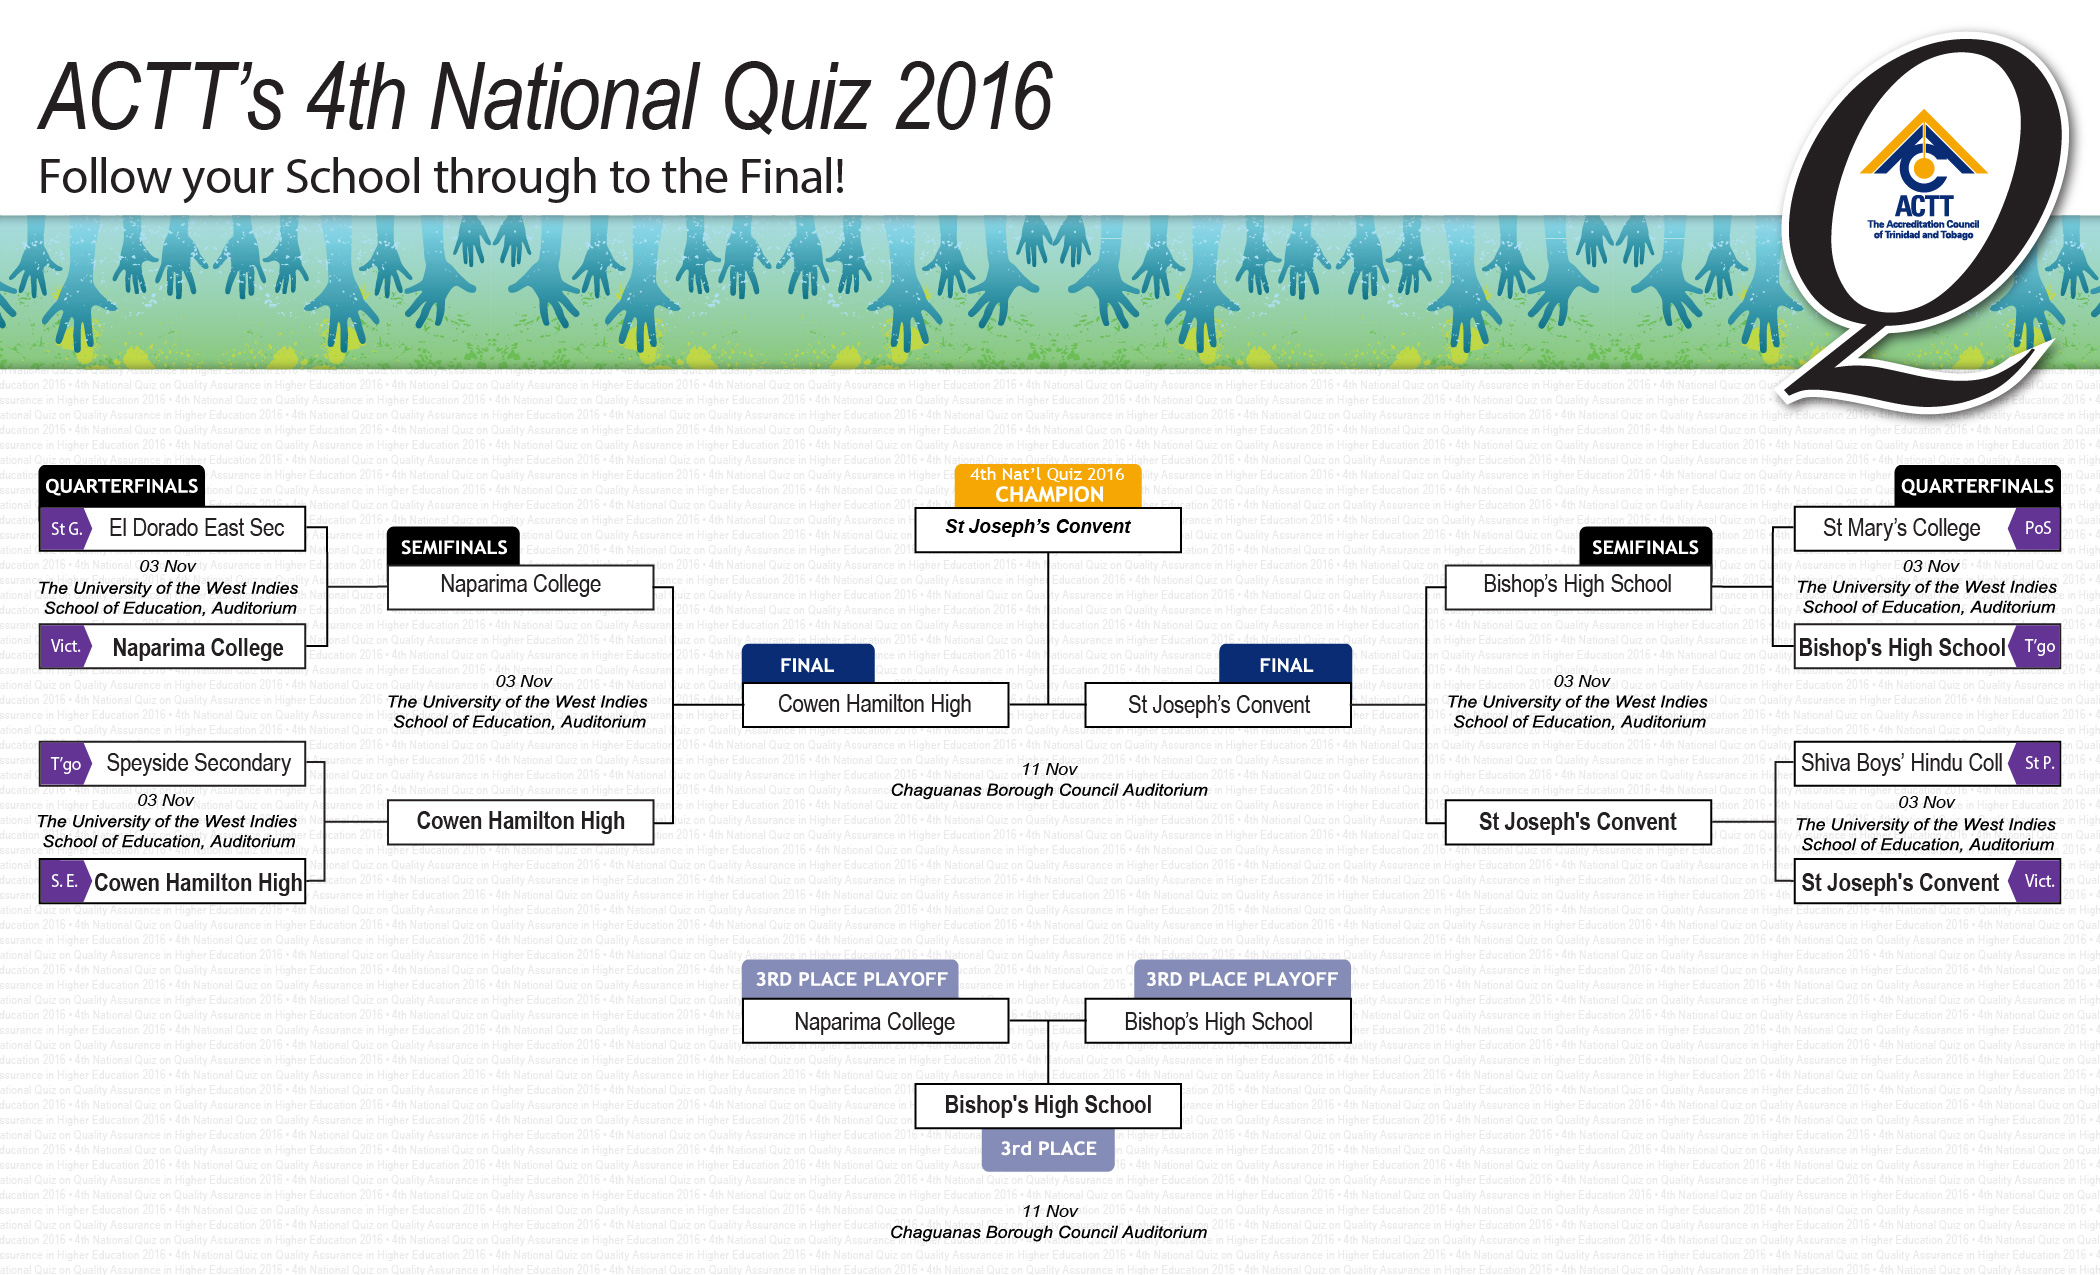 4th National Quiz Team Standings